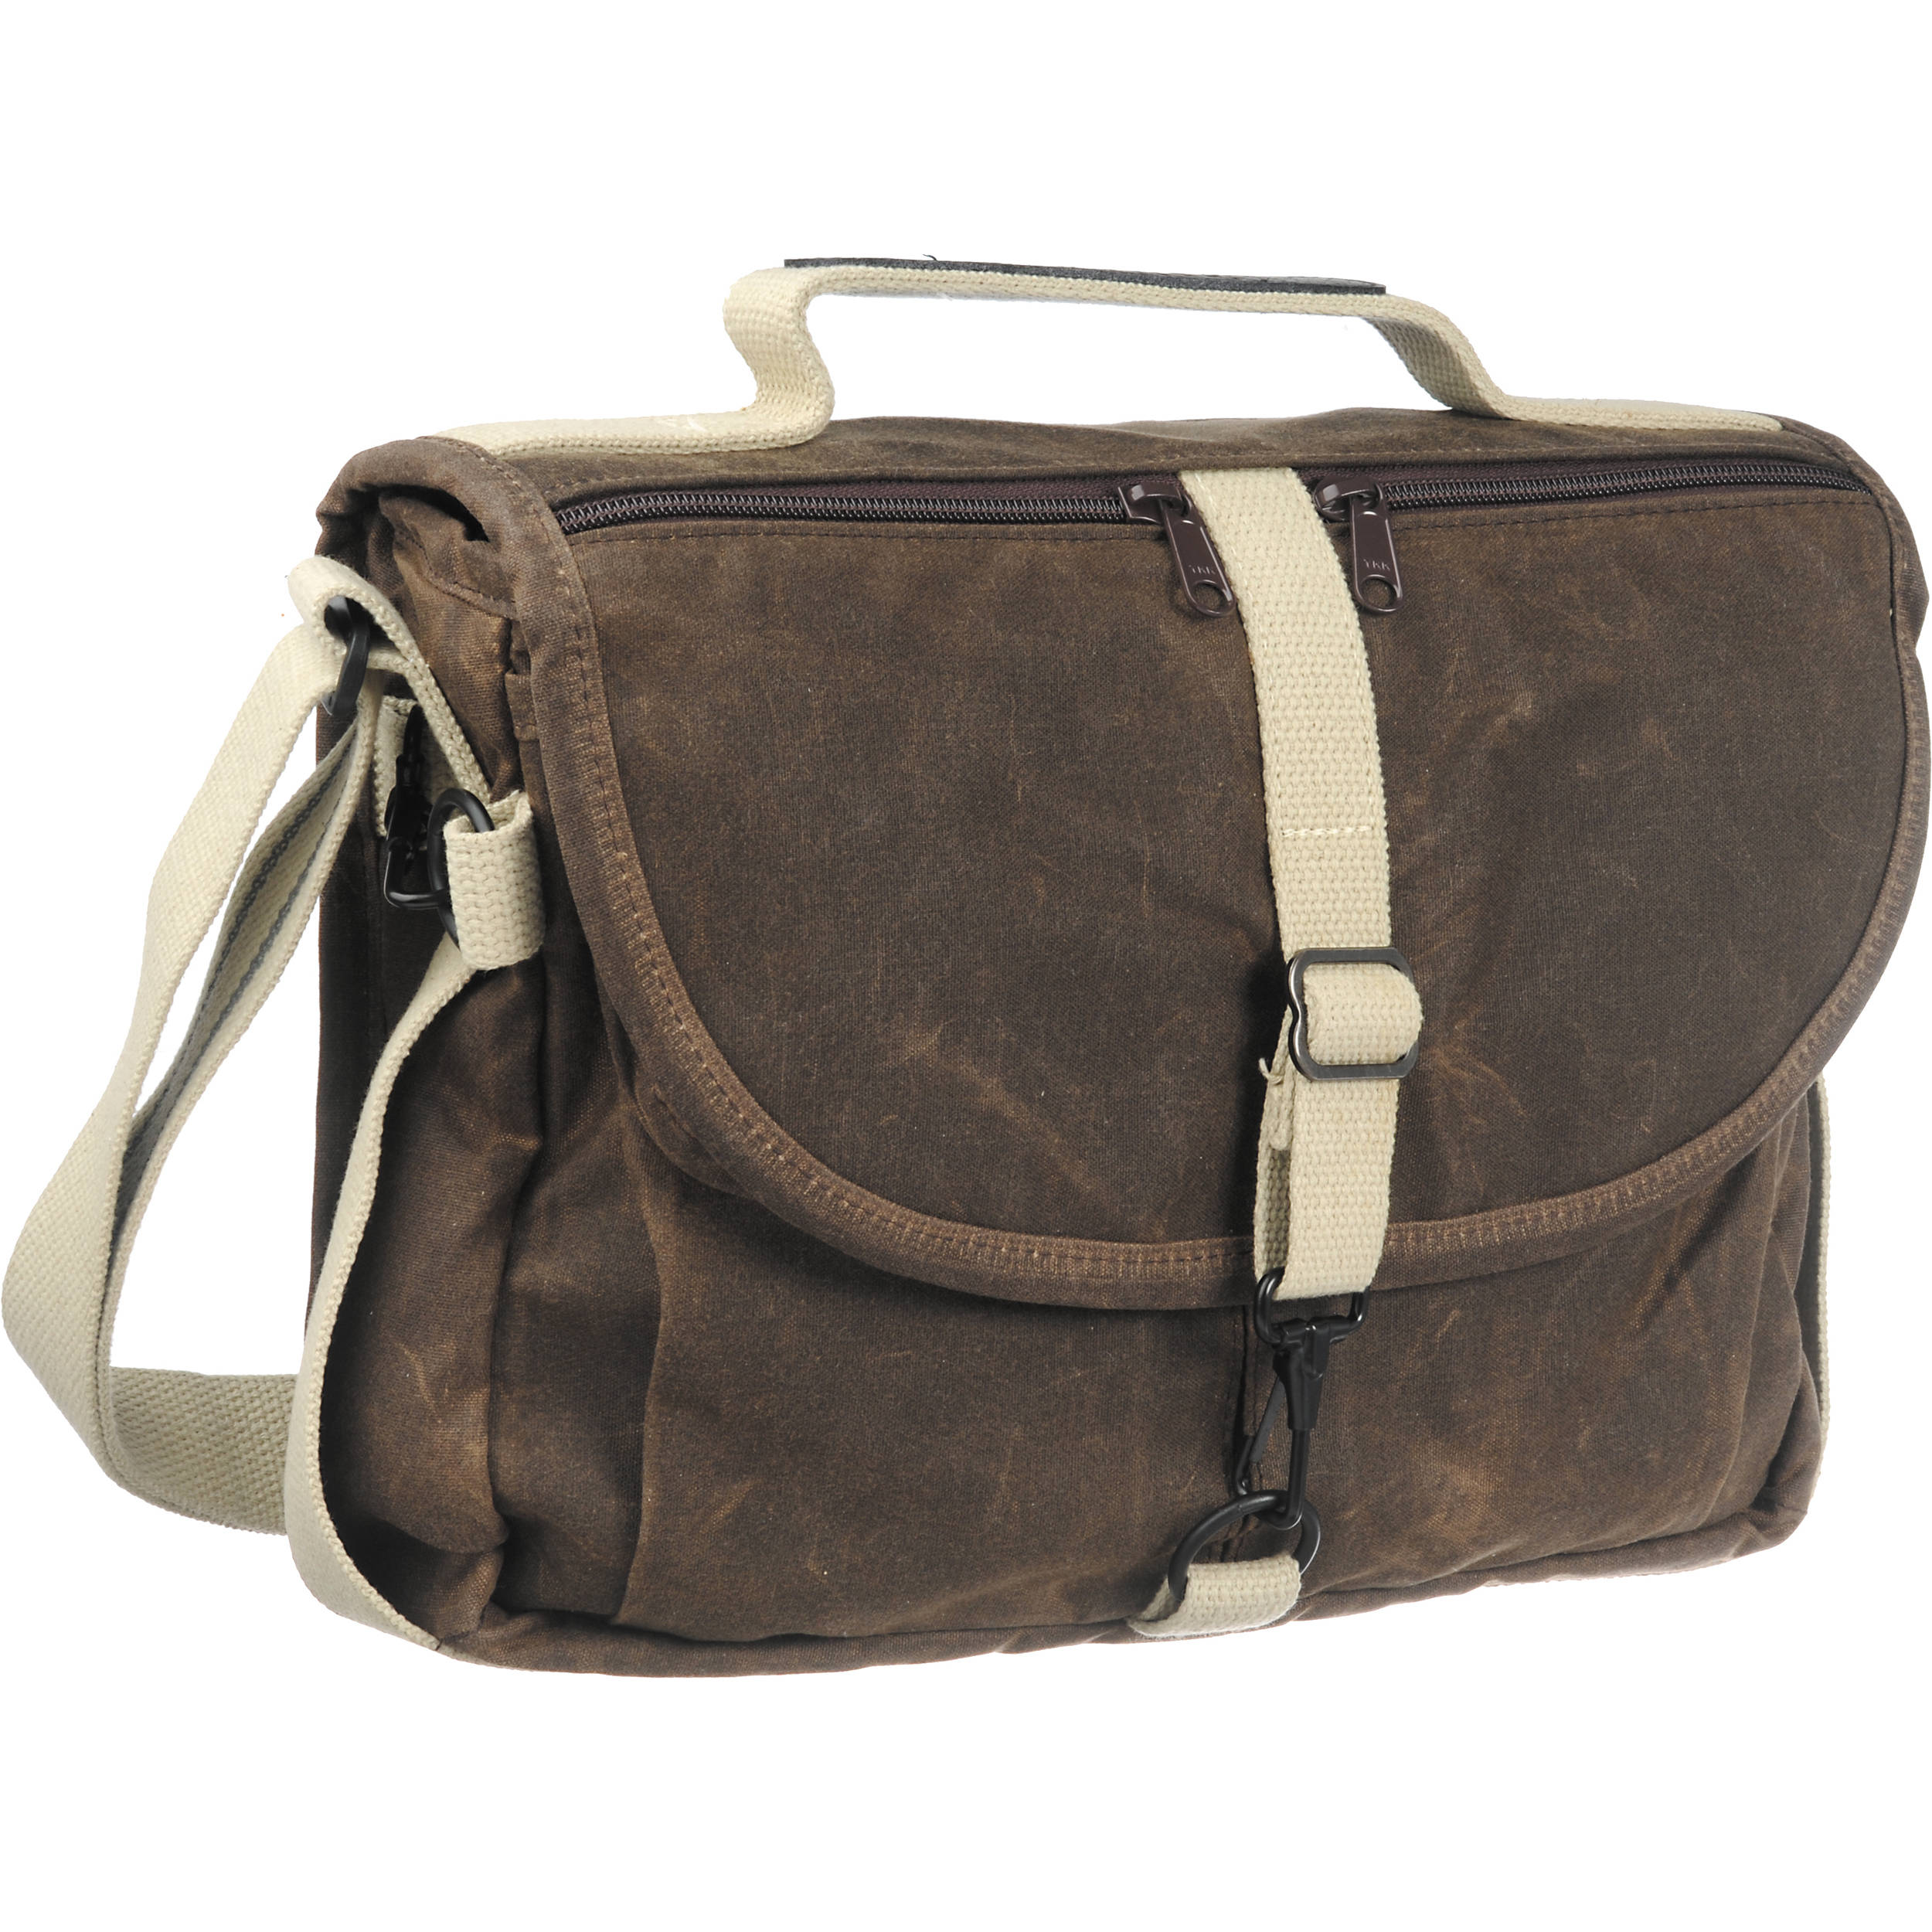 Domke F 803 Ruggedwear Messenger Bag Brown